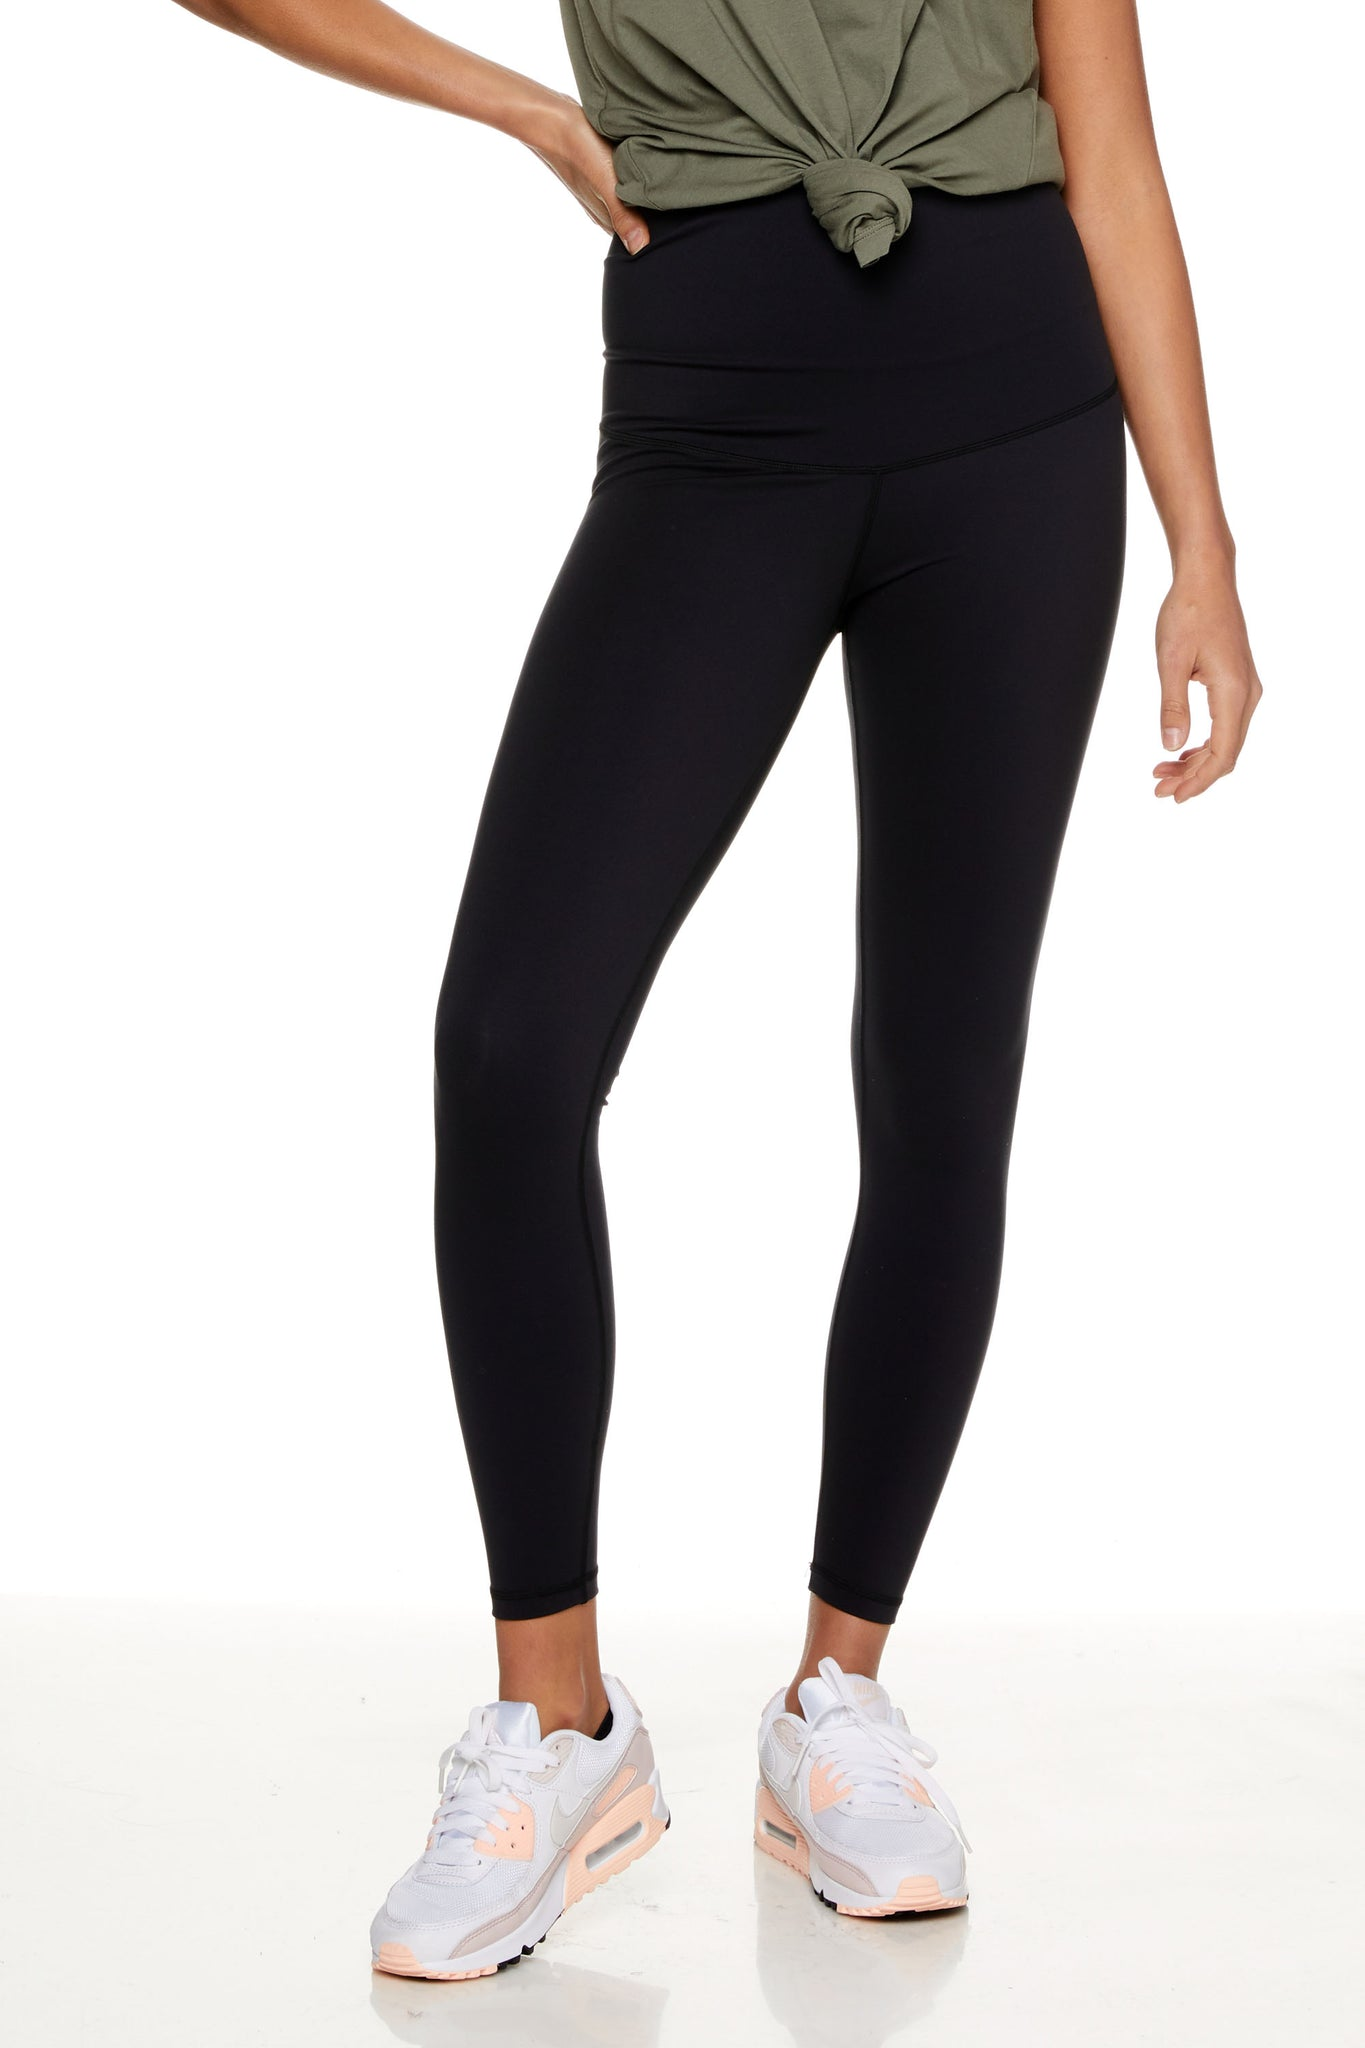 Black Maternity Sports Legging 6